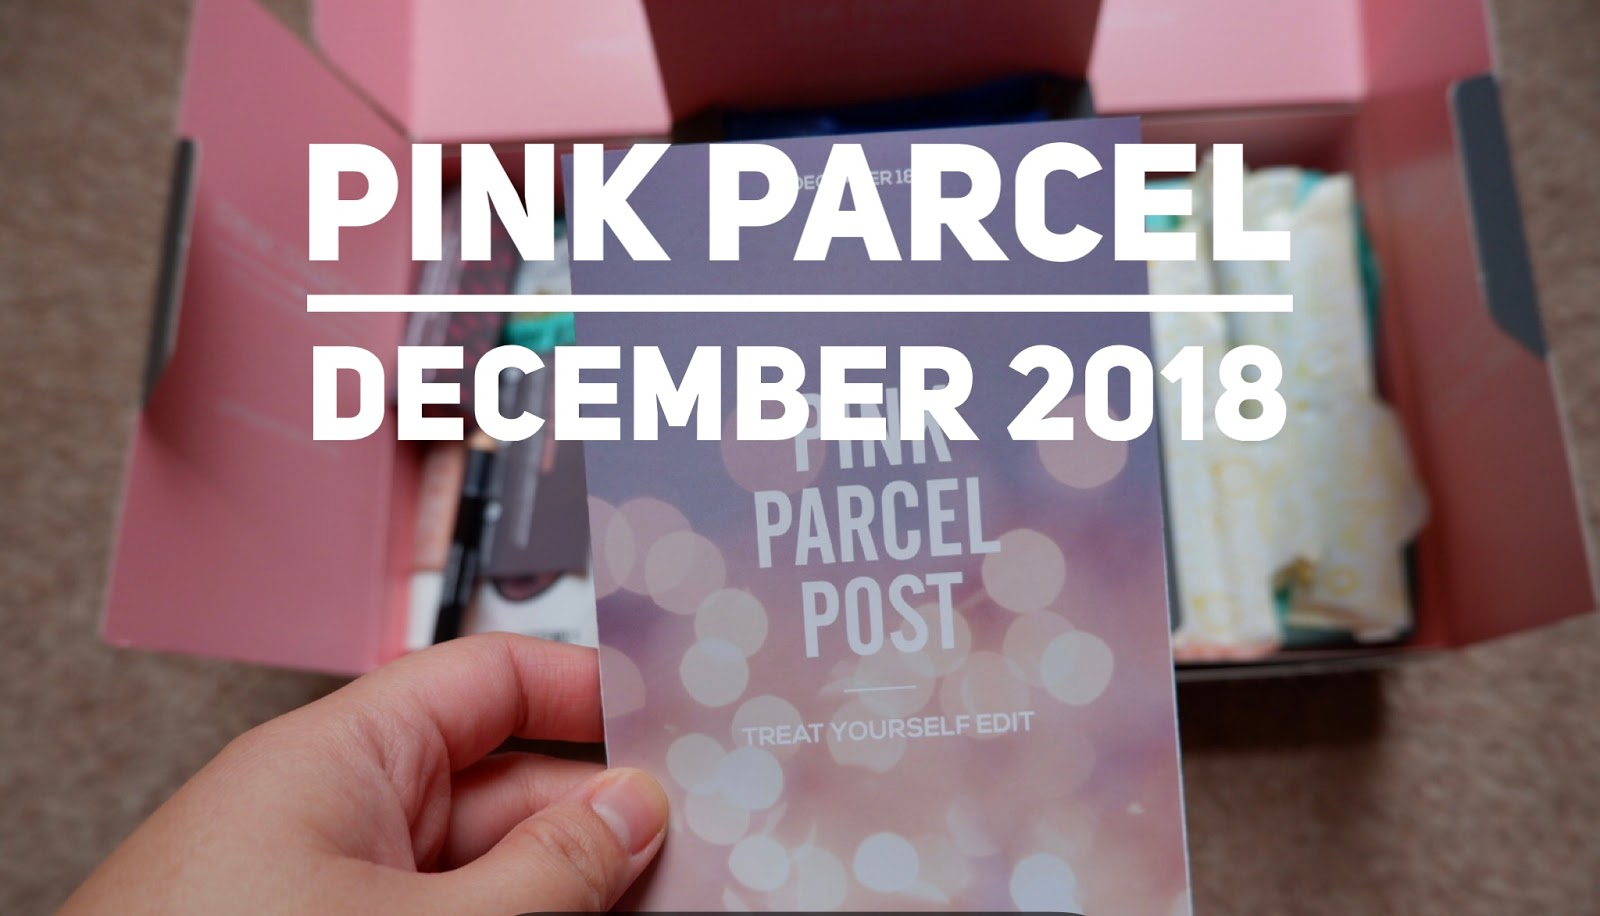 My Beauty Box Experience: Pink Parcel December 2018